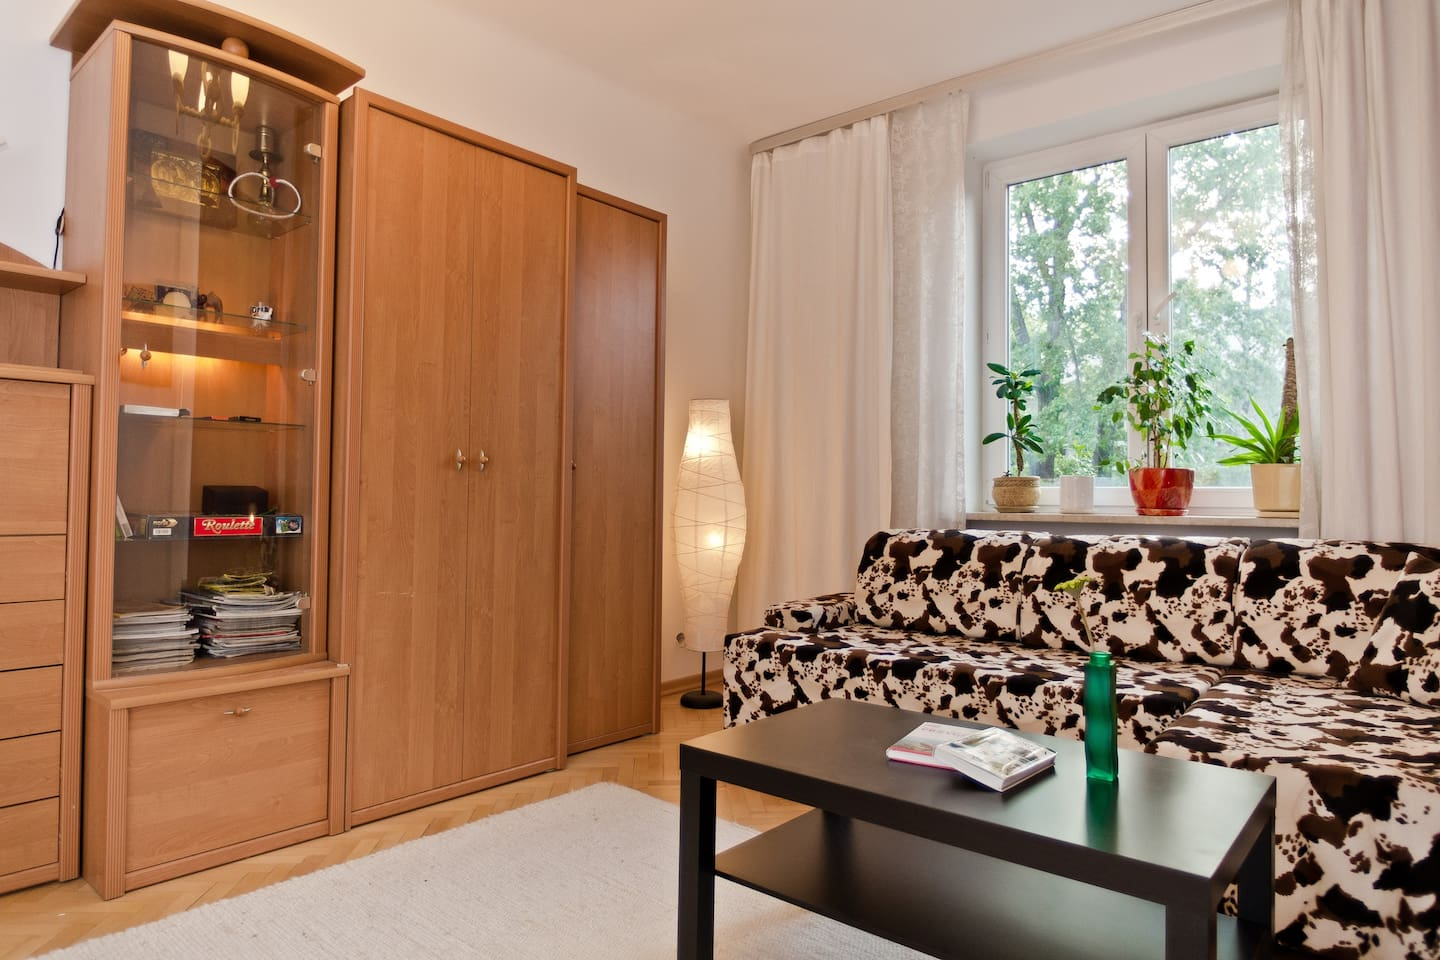 Warsaw Green Surf Apartment by Subway!